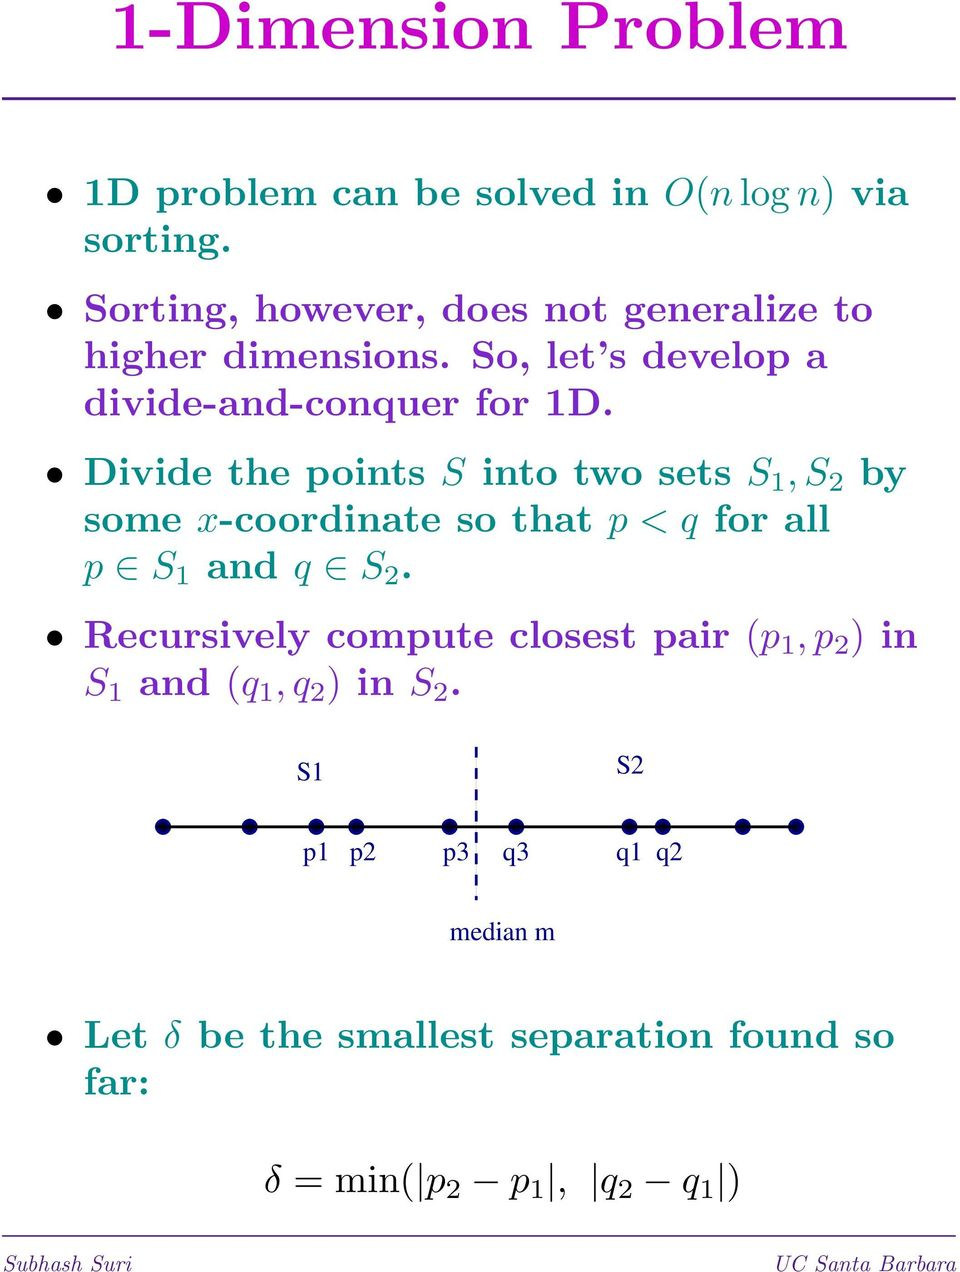 Divide the points S into two sets S 1, S 2 by some x-coordinate so that p < q for all p S 1 and q S 2.